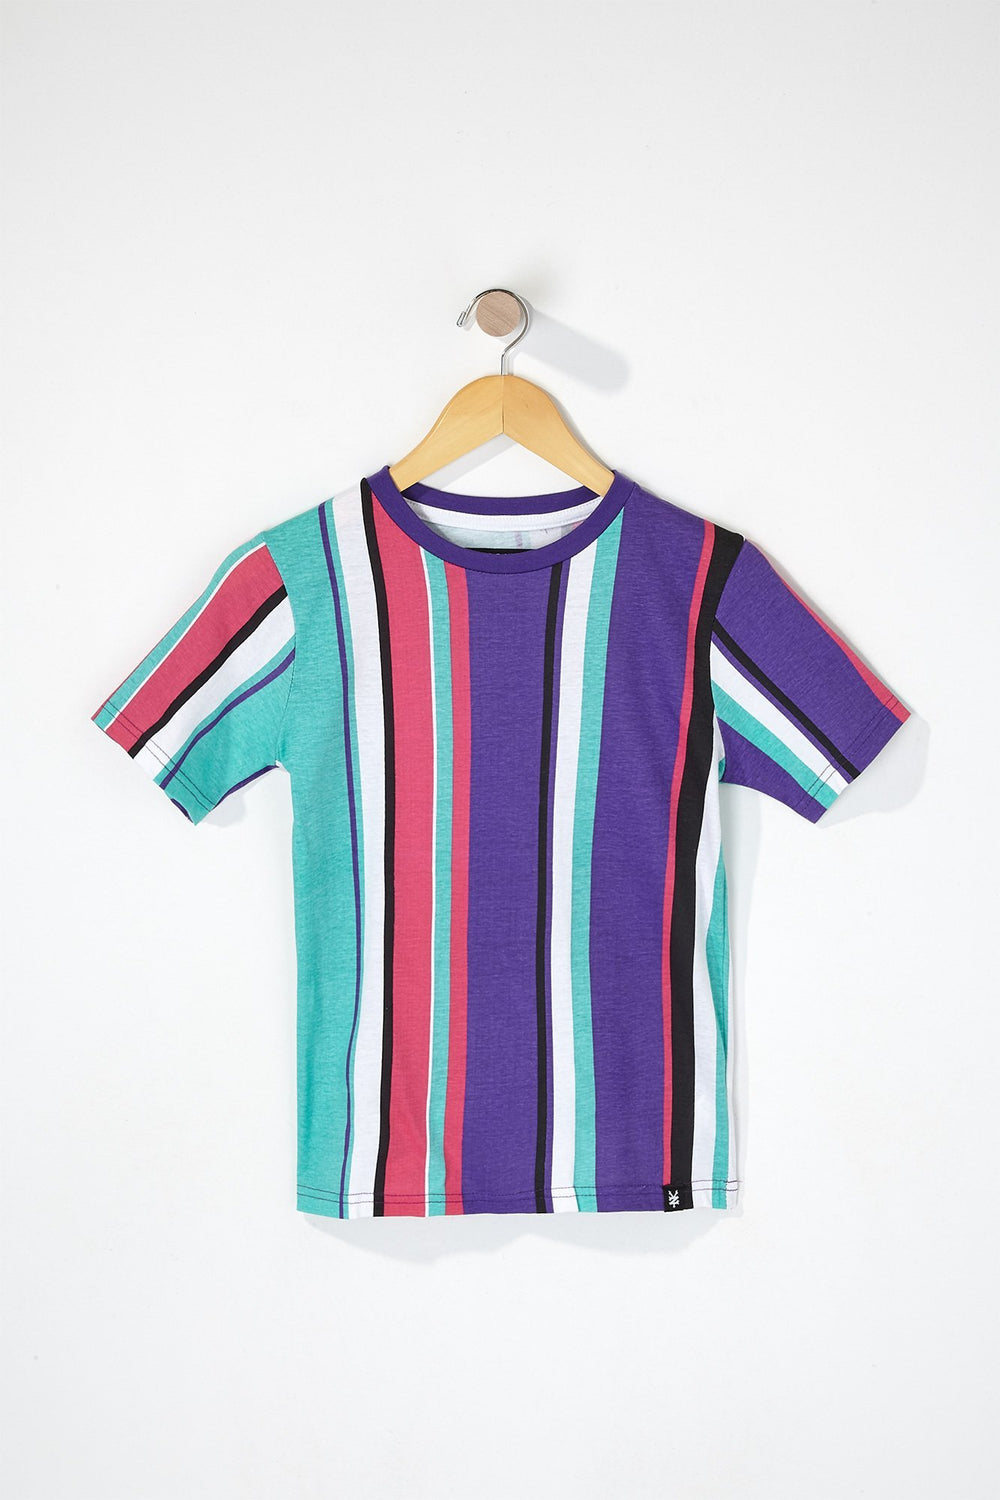 Zoo York Boys Striped T-Shirt Purple